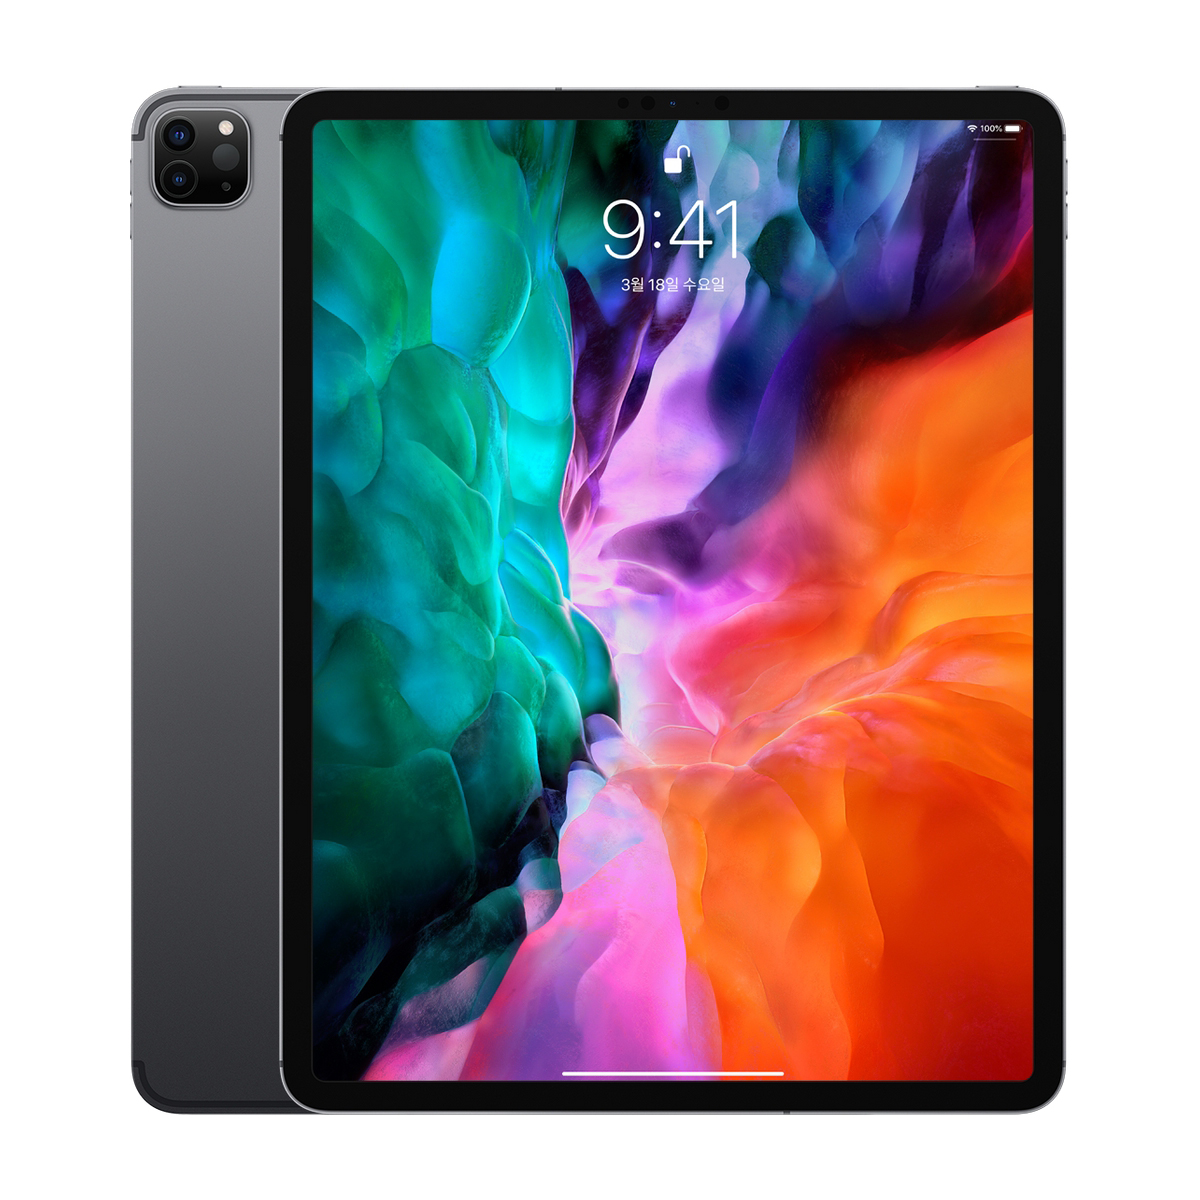 Apple 2020년 iPad Pro 12.9 4세대, Wi-Fi+Cellular, 128GB, Space Gray